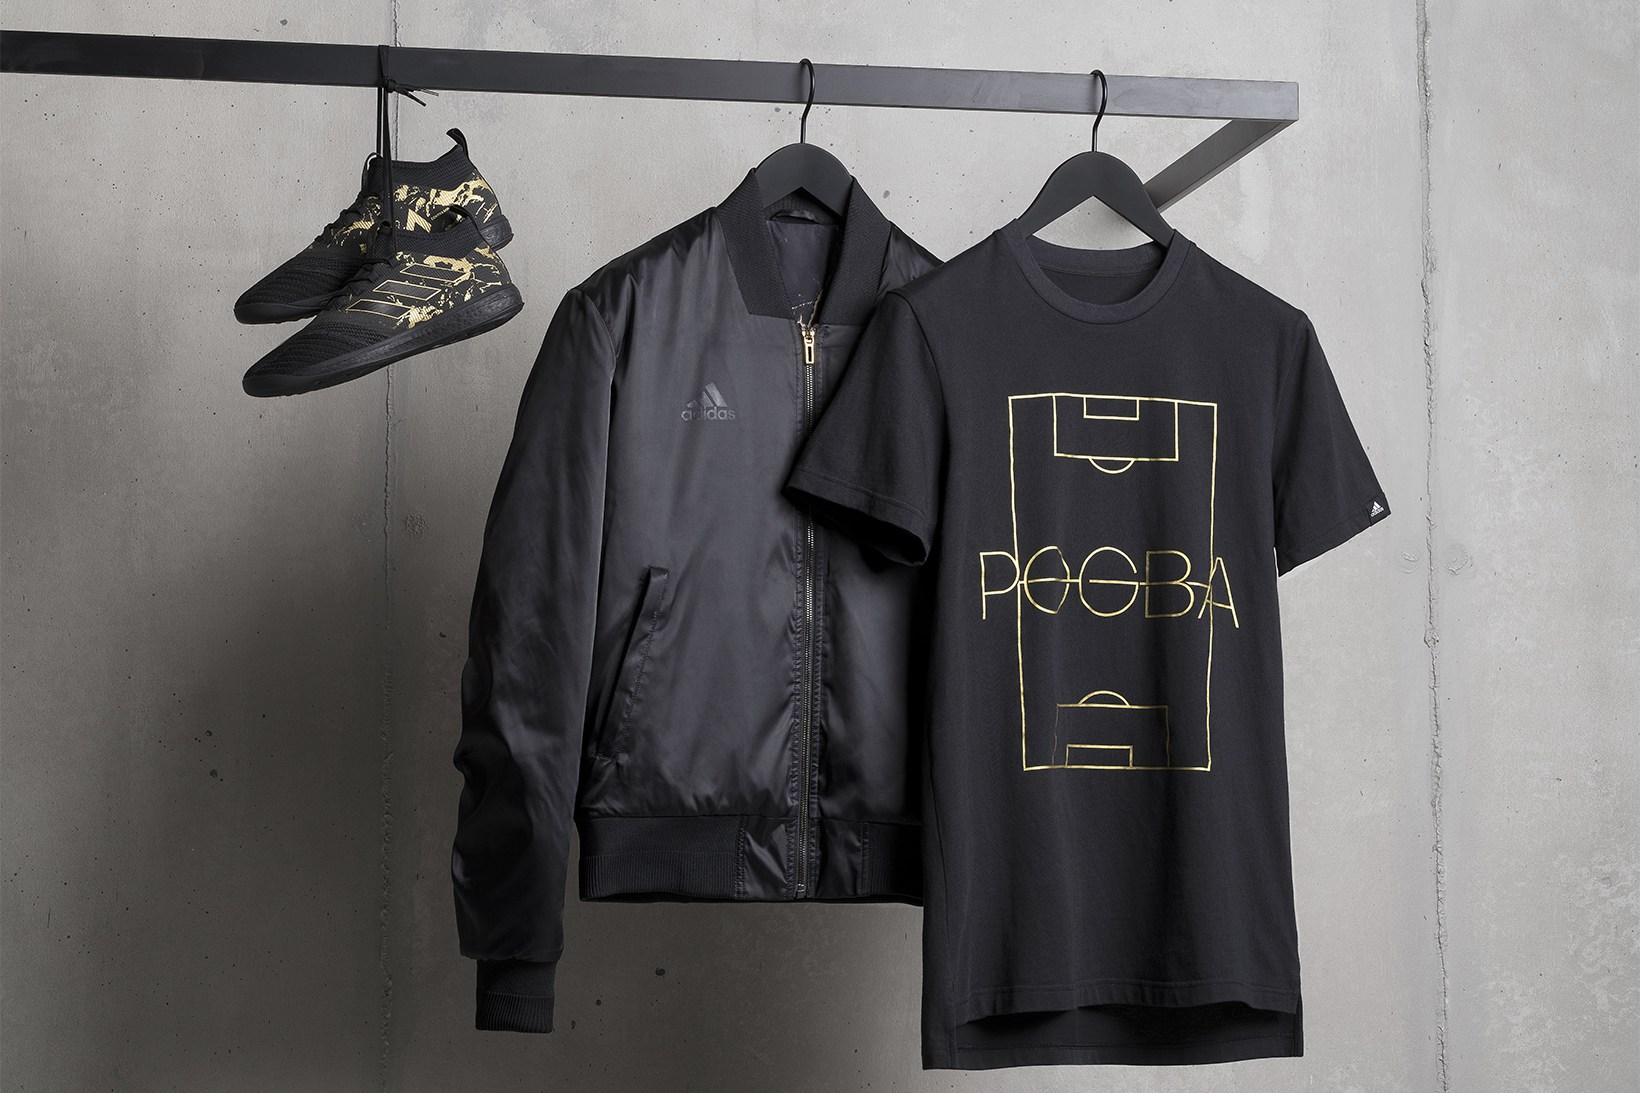 b4dae50fd Mens Clothing Online: Paul Pogba's Adidas Collection